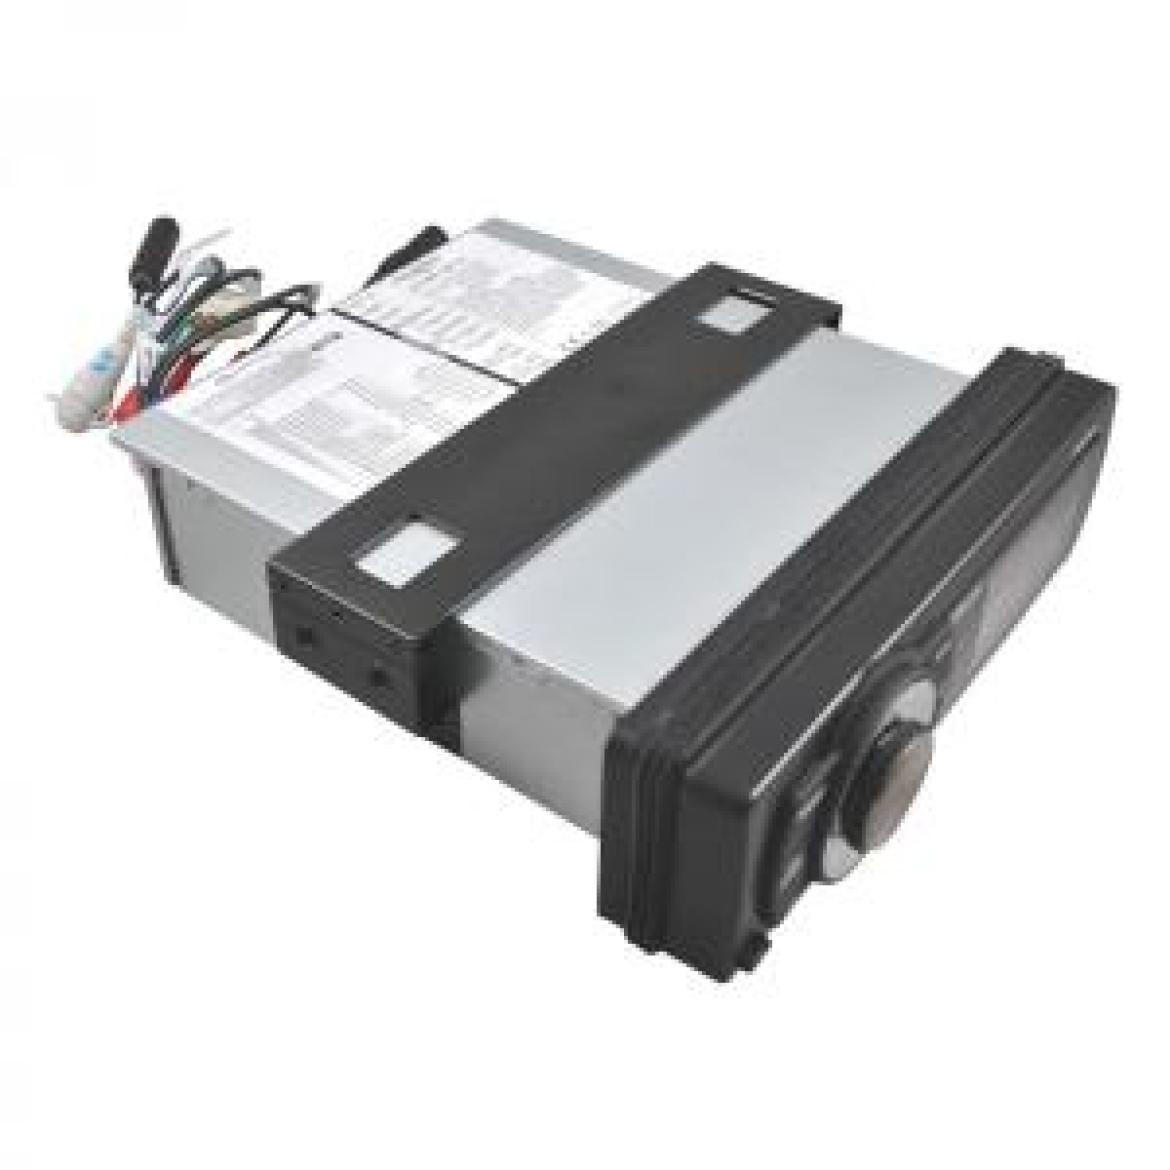 AQ-MP-5UBT-H-Mounting-Bracket-1600x1600